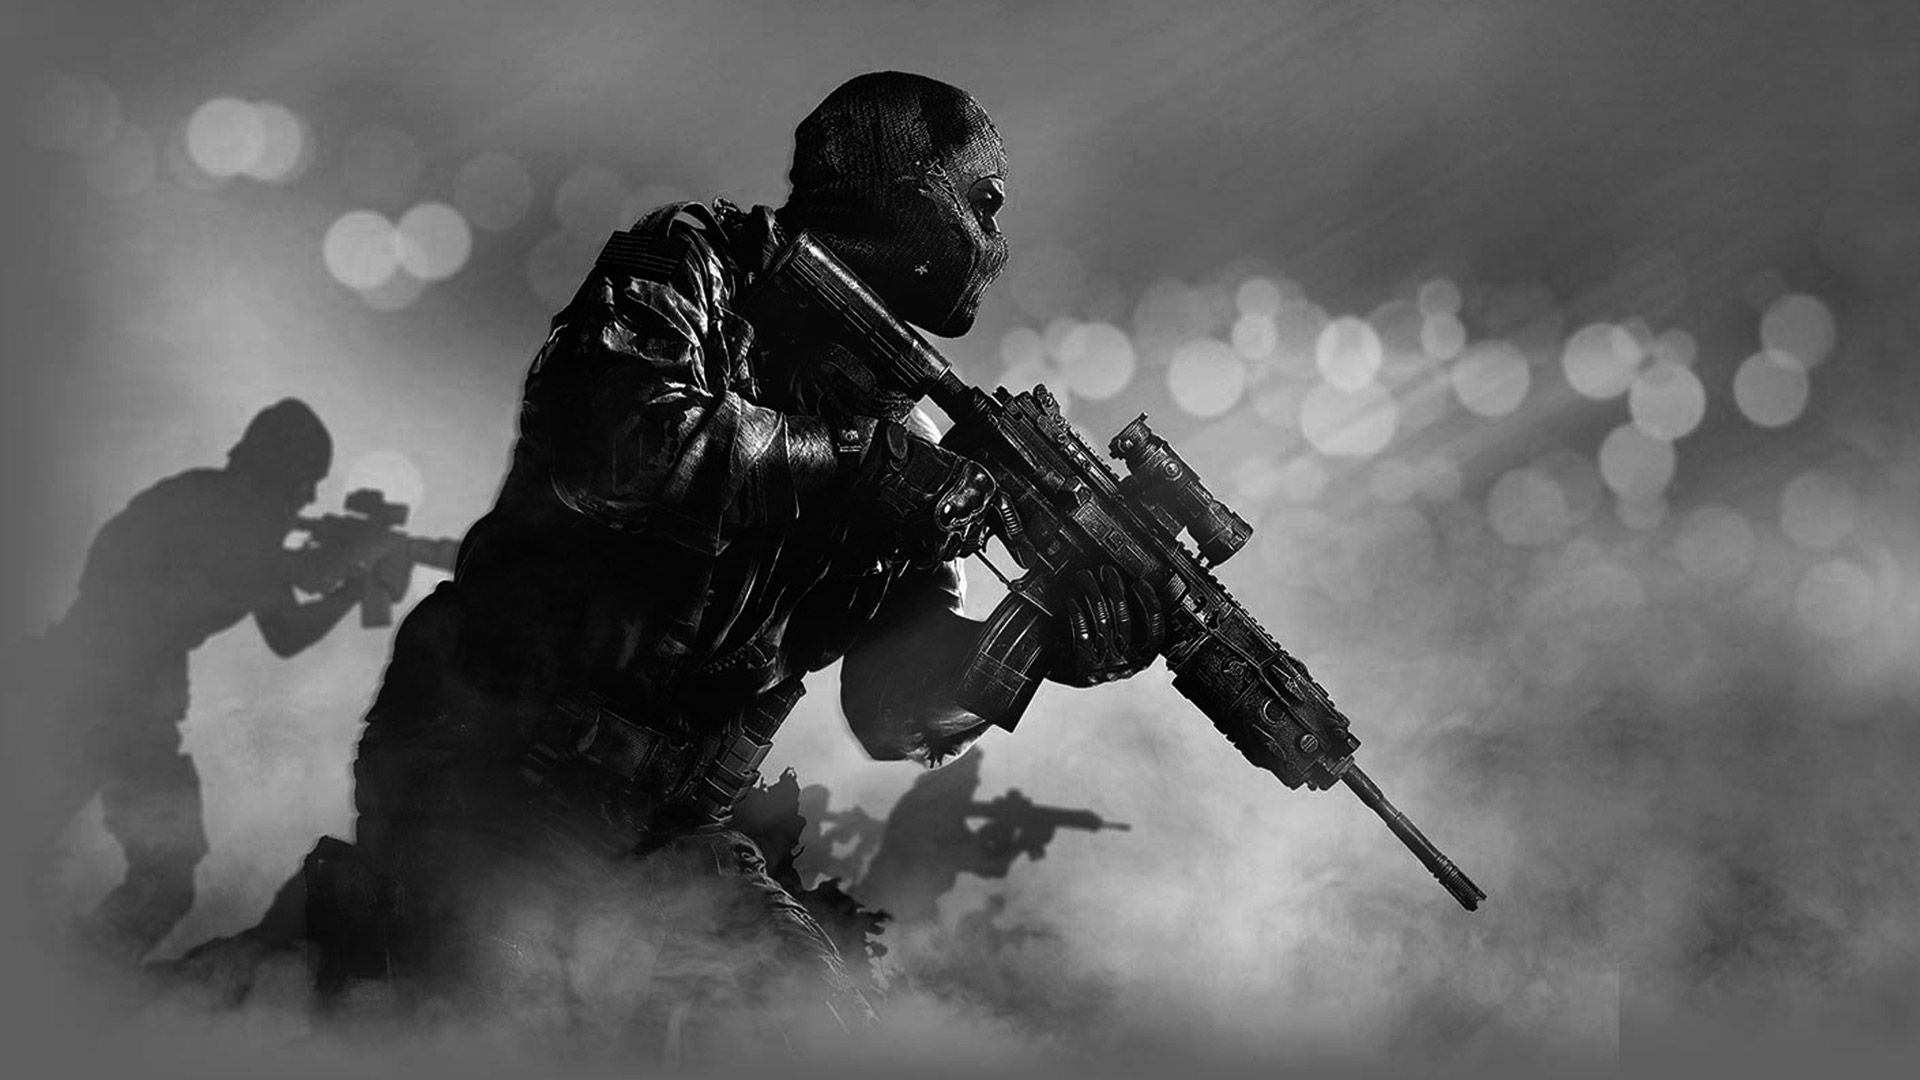 Video Game Call Of Duty Ghosts Wallpaper Call of duty